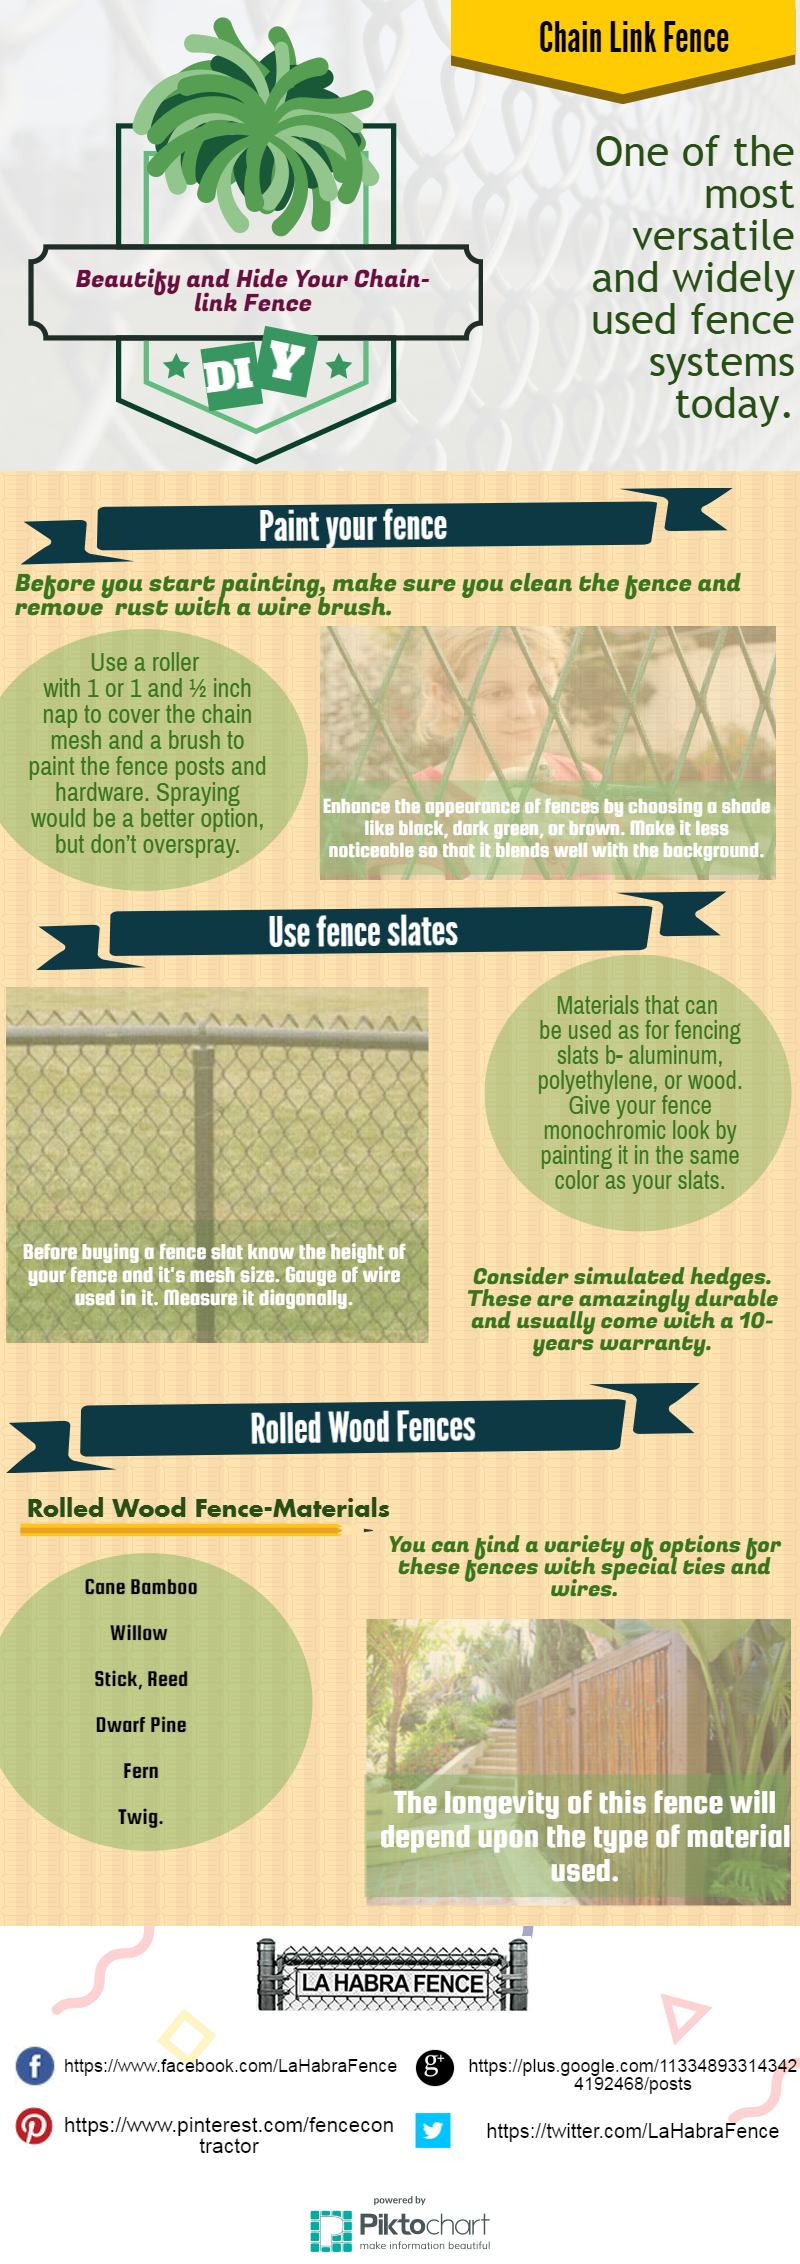 Beautify and hide chain link fence infographic